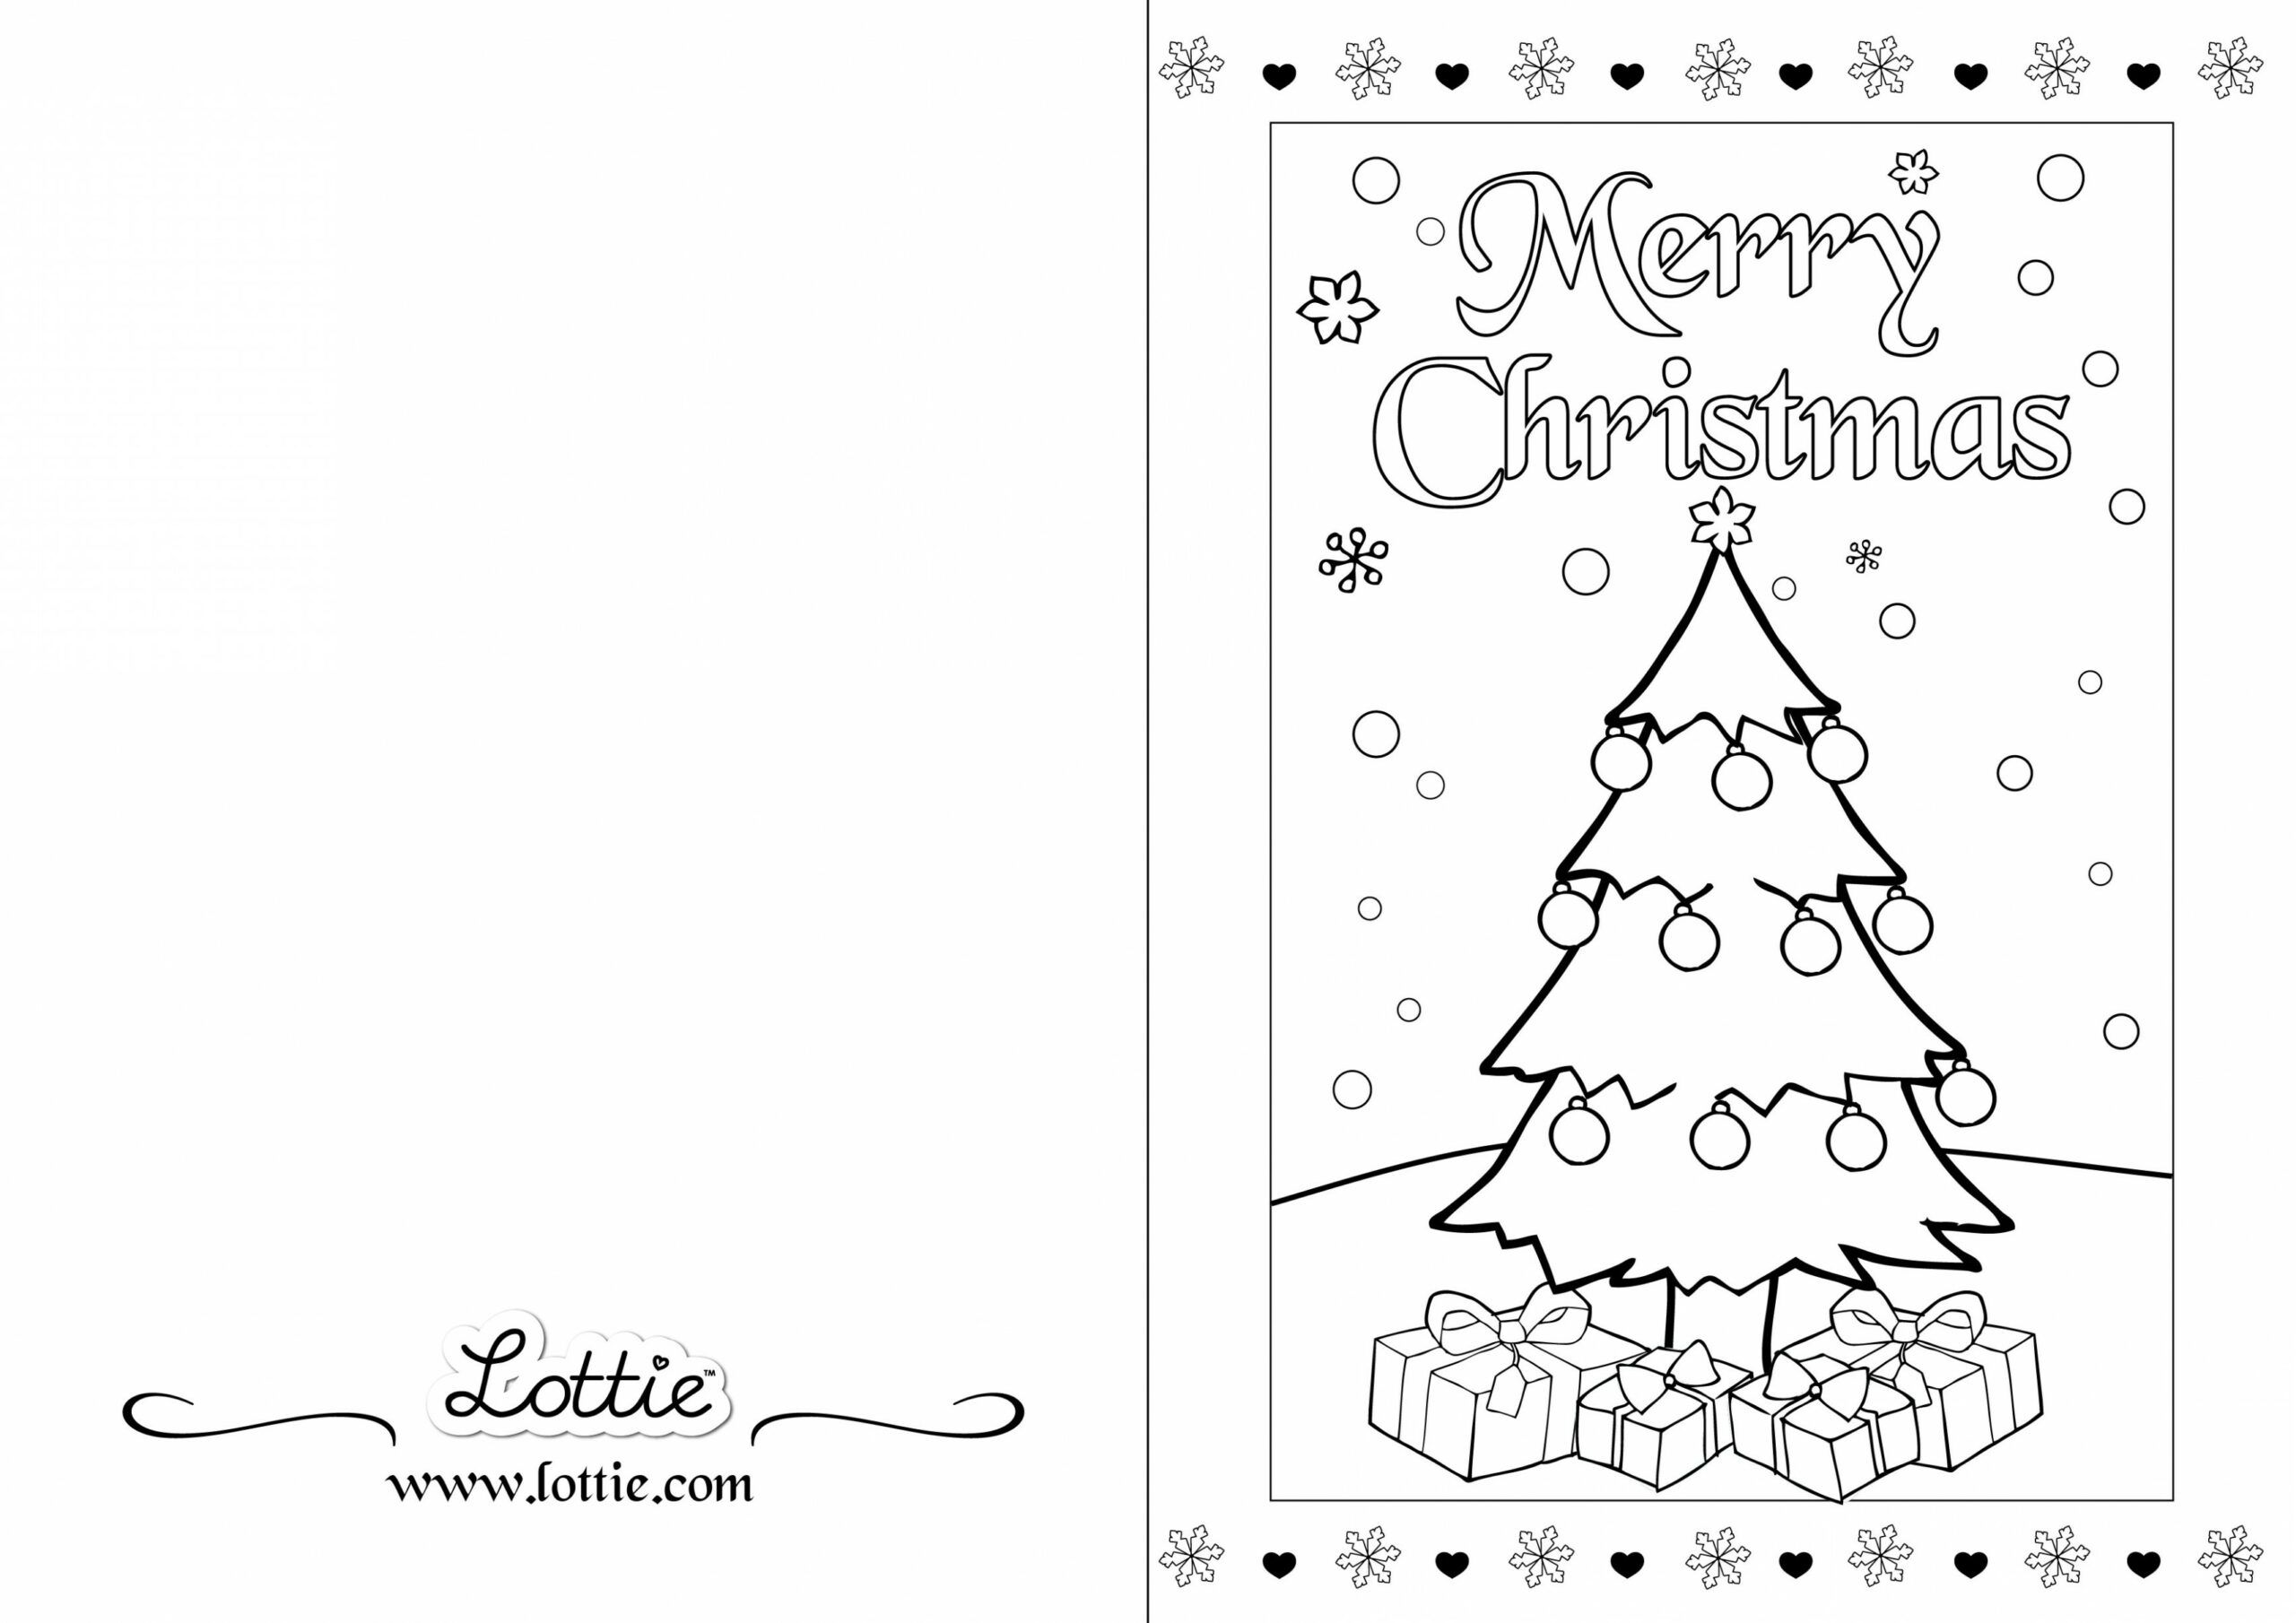 002 Unbelievable Free Printable Holiday Card Template Image  Templates Christma Tent Recipe Gift HolderFull